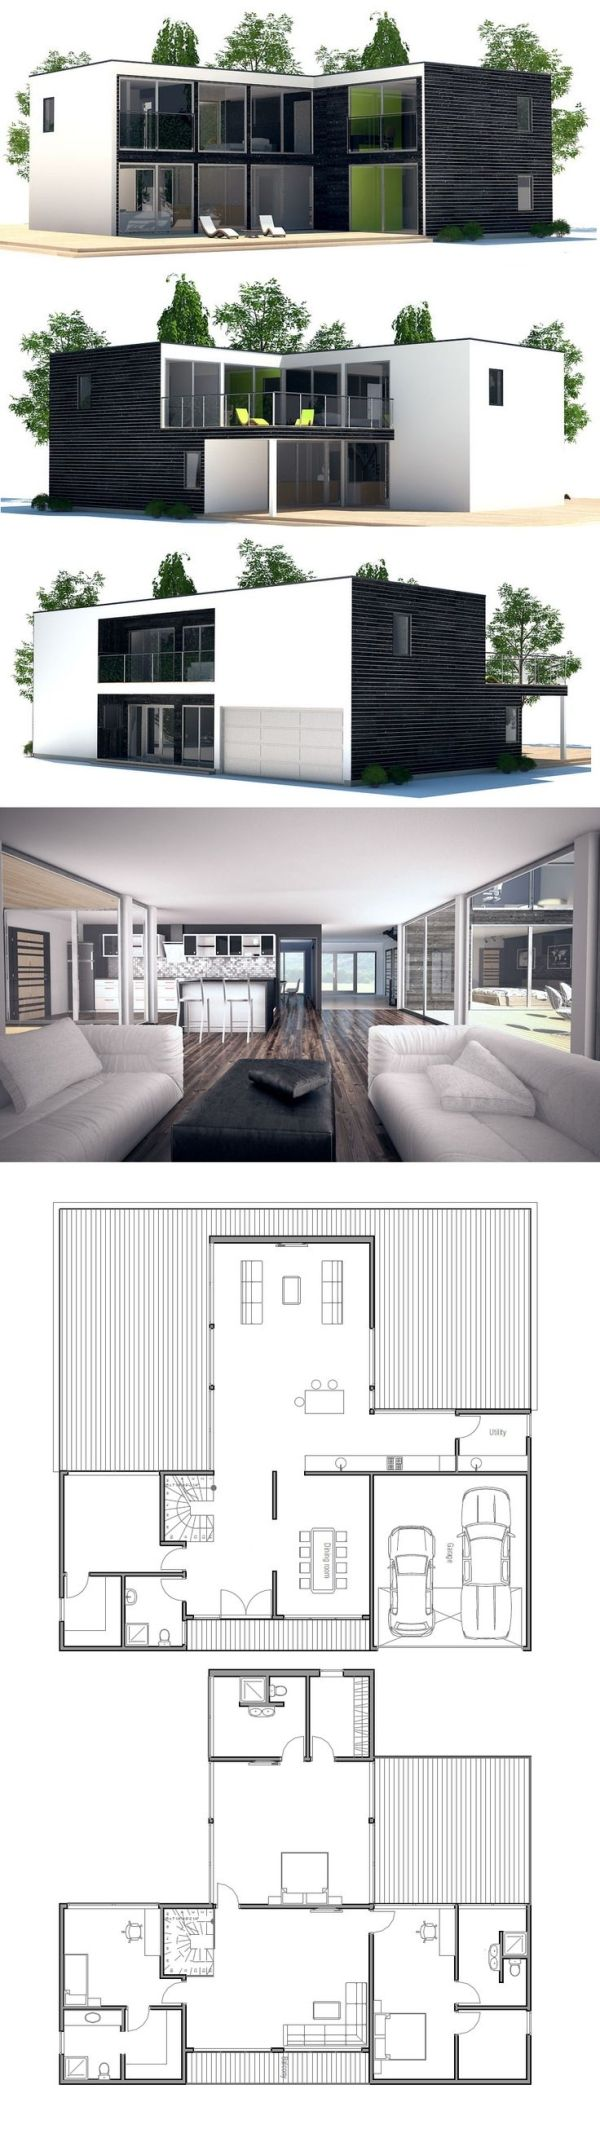 best 25 shipping container house plans ideas only on pinterest shipping container house plan by iamsegs